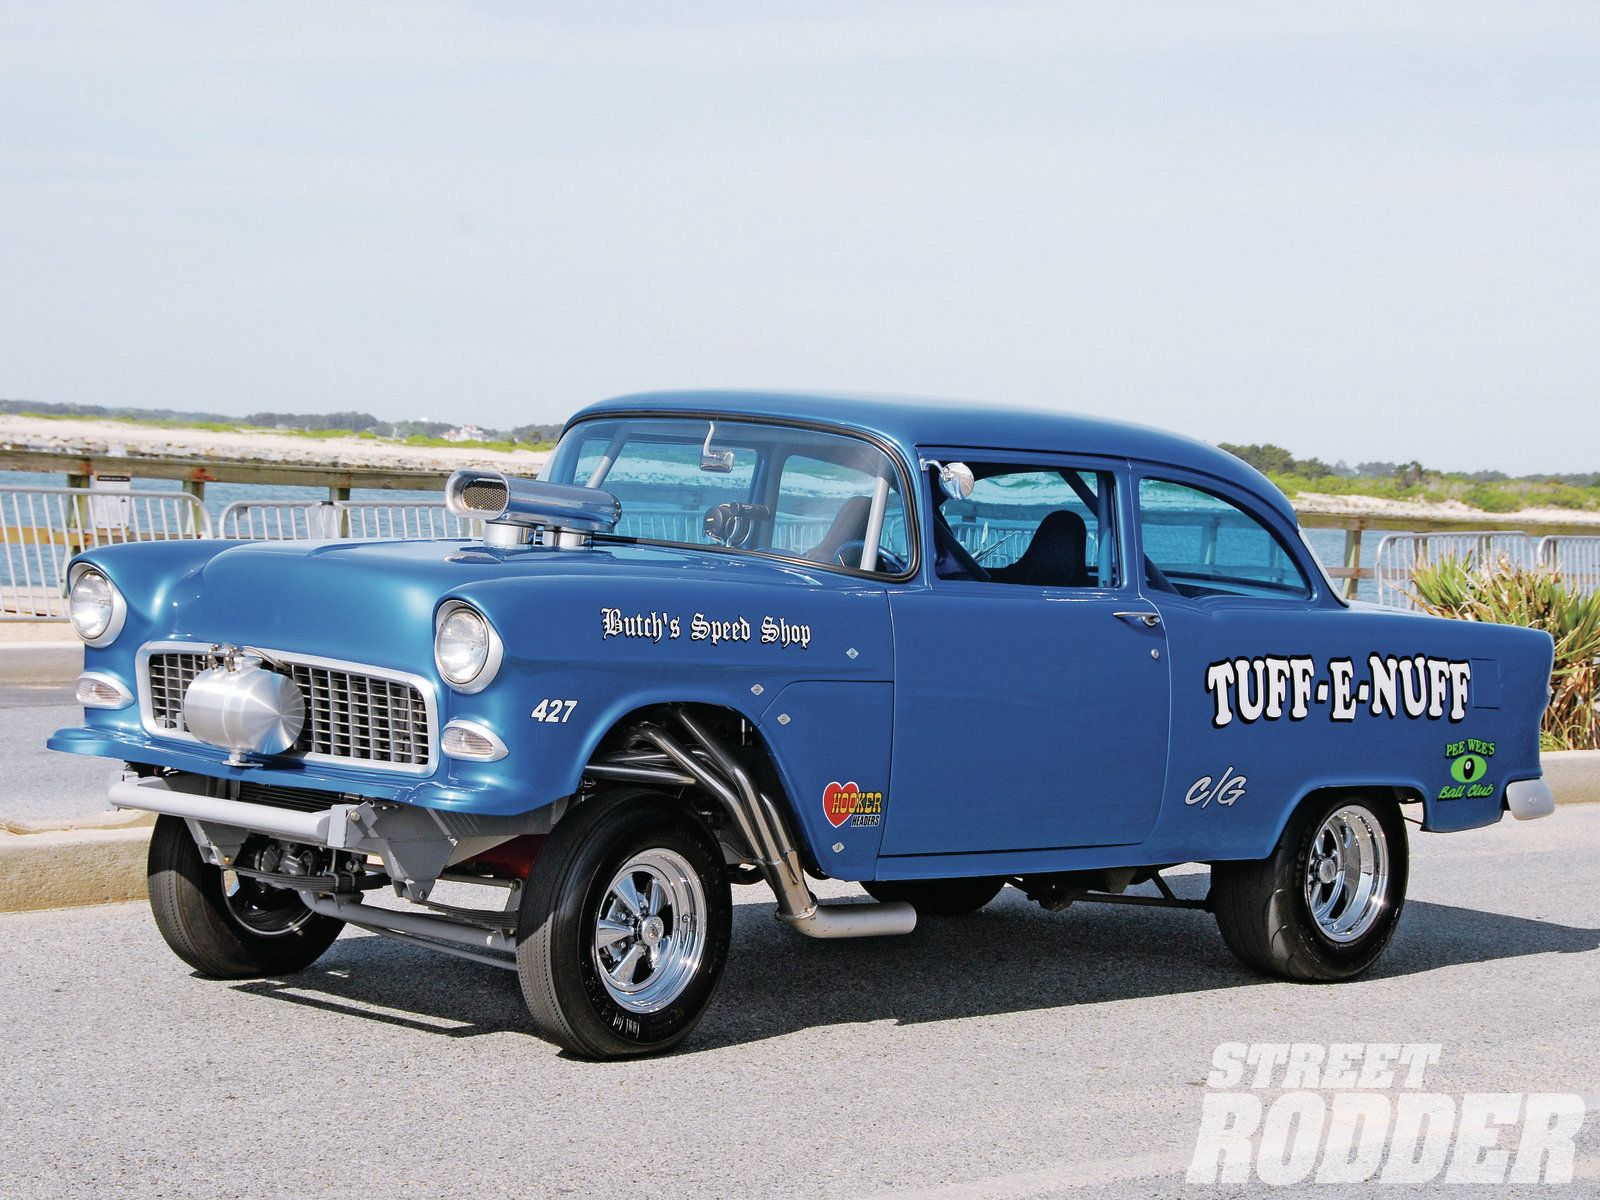 1955 chevrolet hot rod truck pictures to pin on pinterest - 52 Chevy Gasser On The Street 1955 Chevy Gasser Runs A 502ci Big Block Was